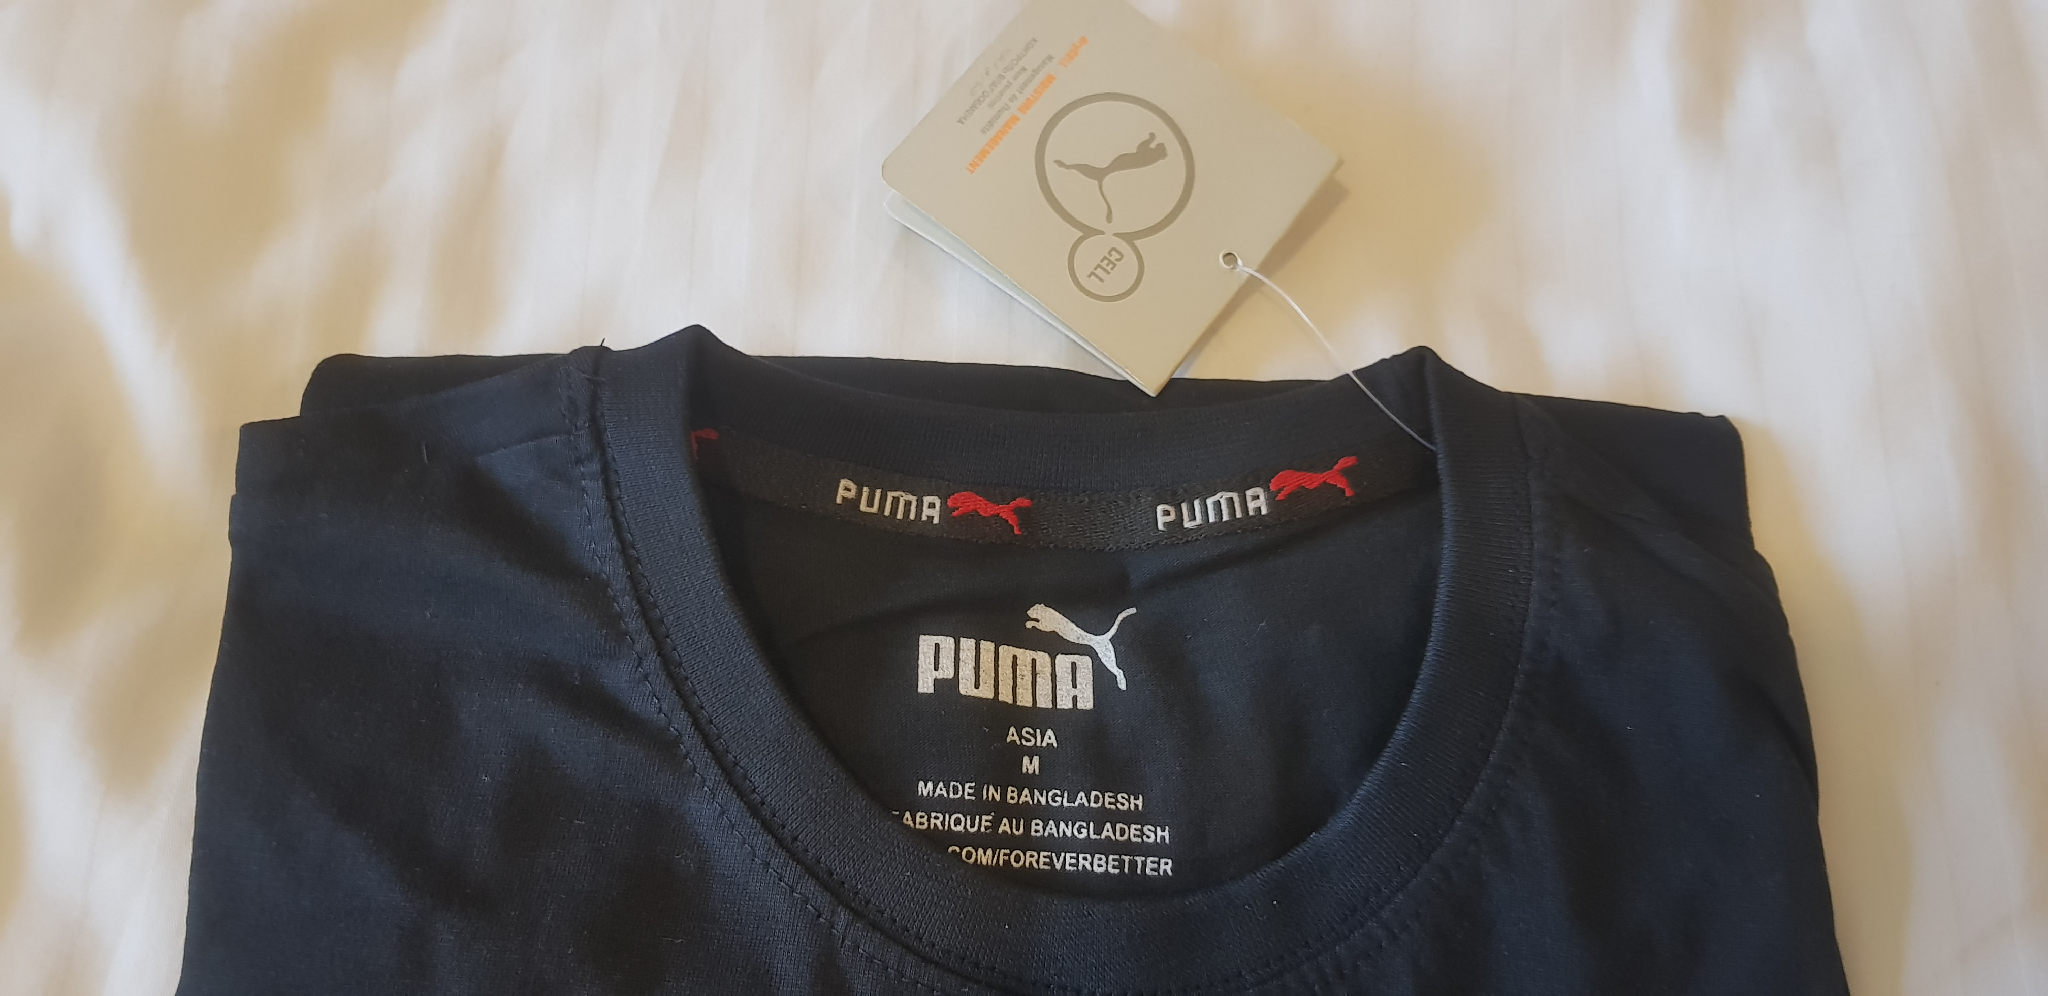 Puma Branded T-Shirt For Sale